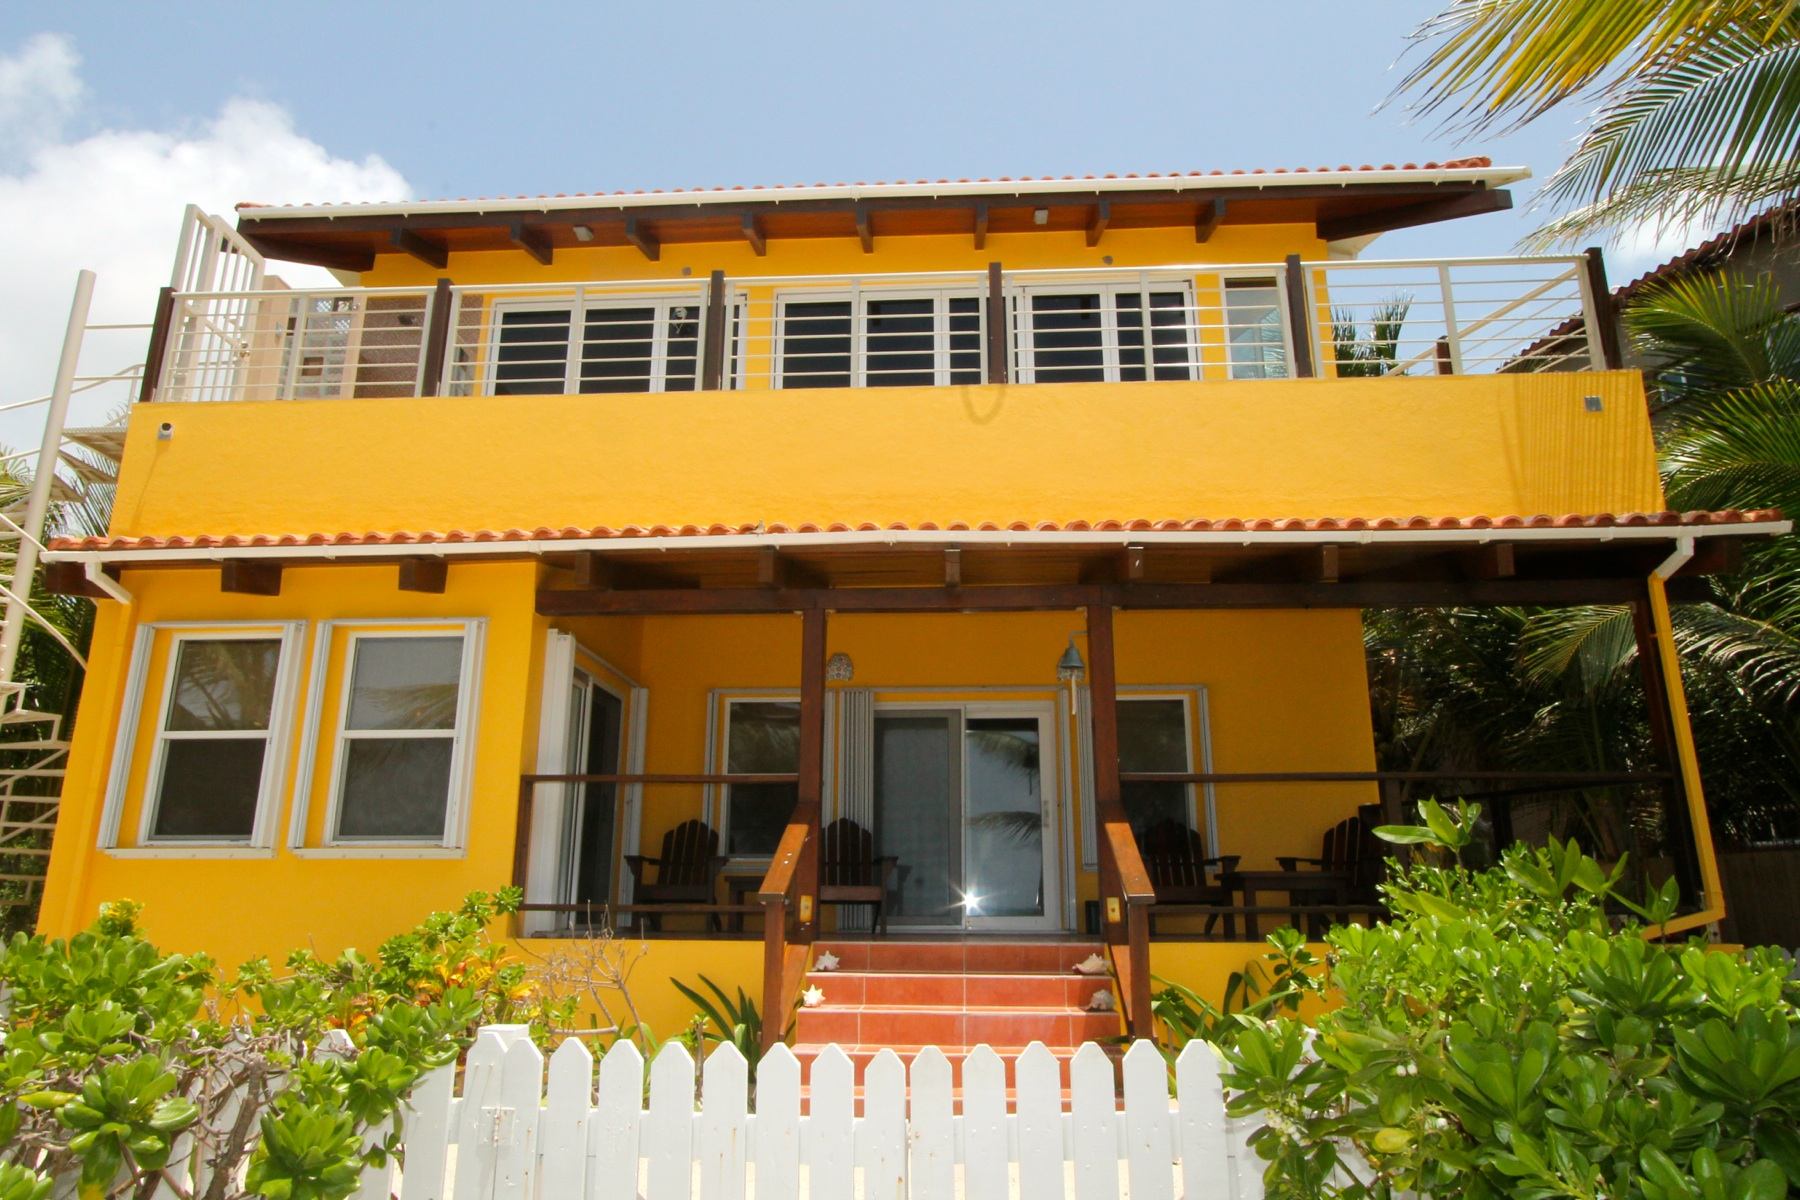 Single Family Home for Rent at Casa Bonita San Pedro Town, Belize